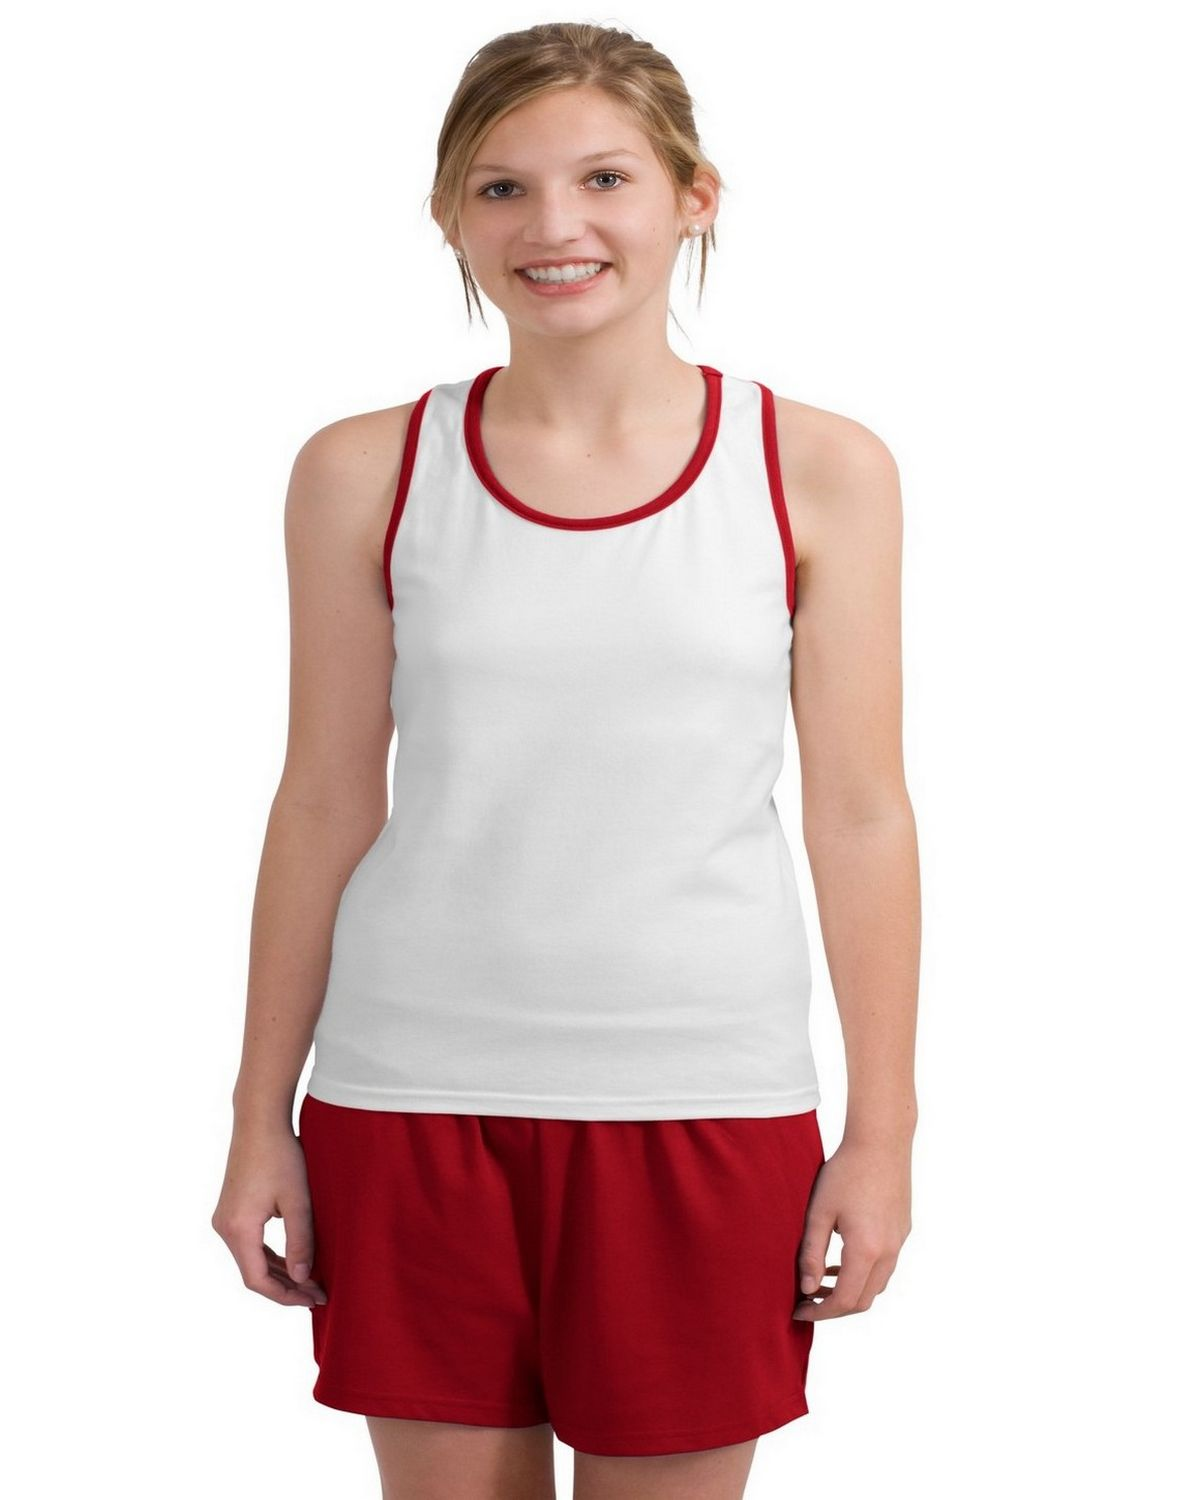 Sport-Tek L204 Ladies Racerback Gym Tank - White/Red - 1X L204